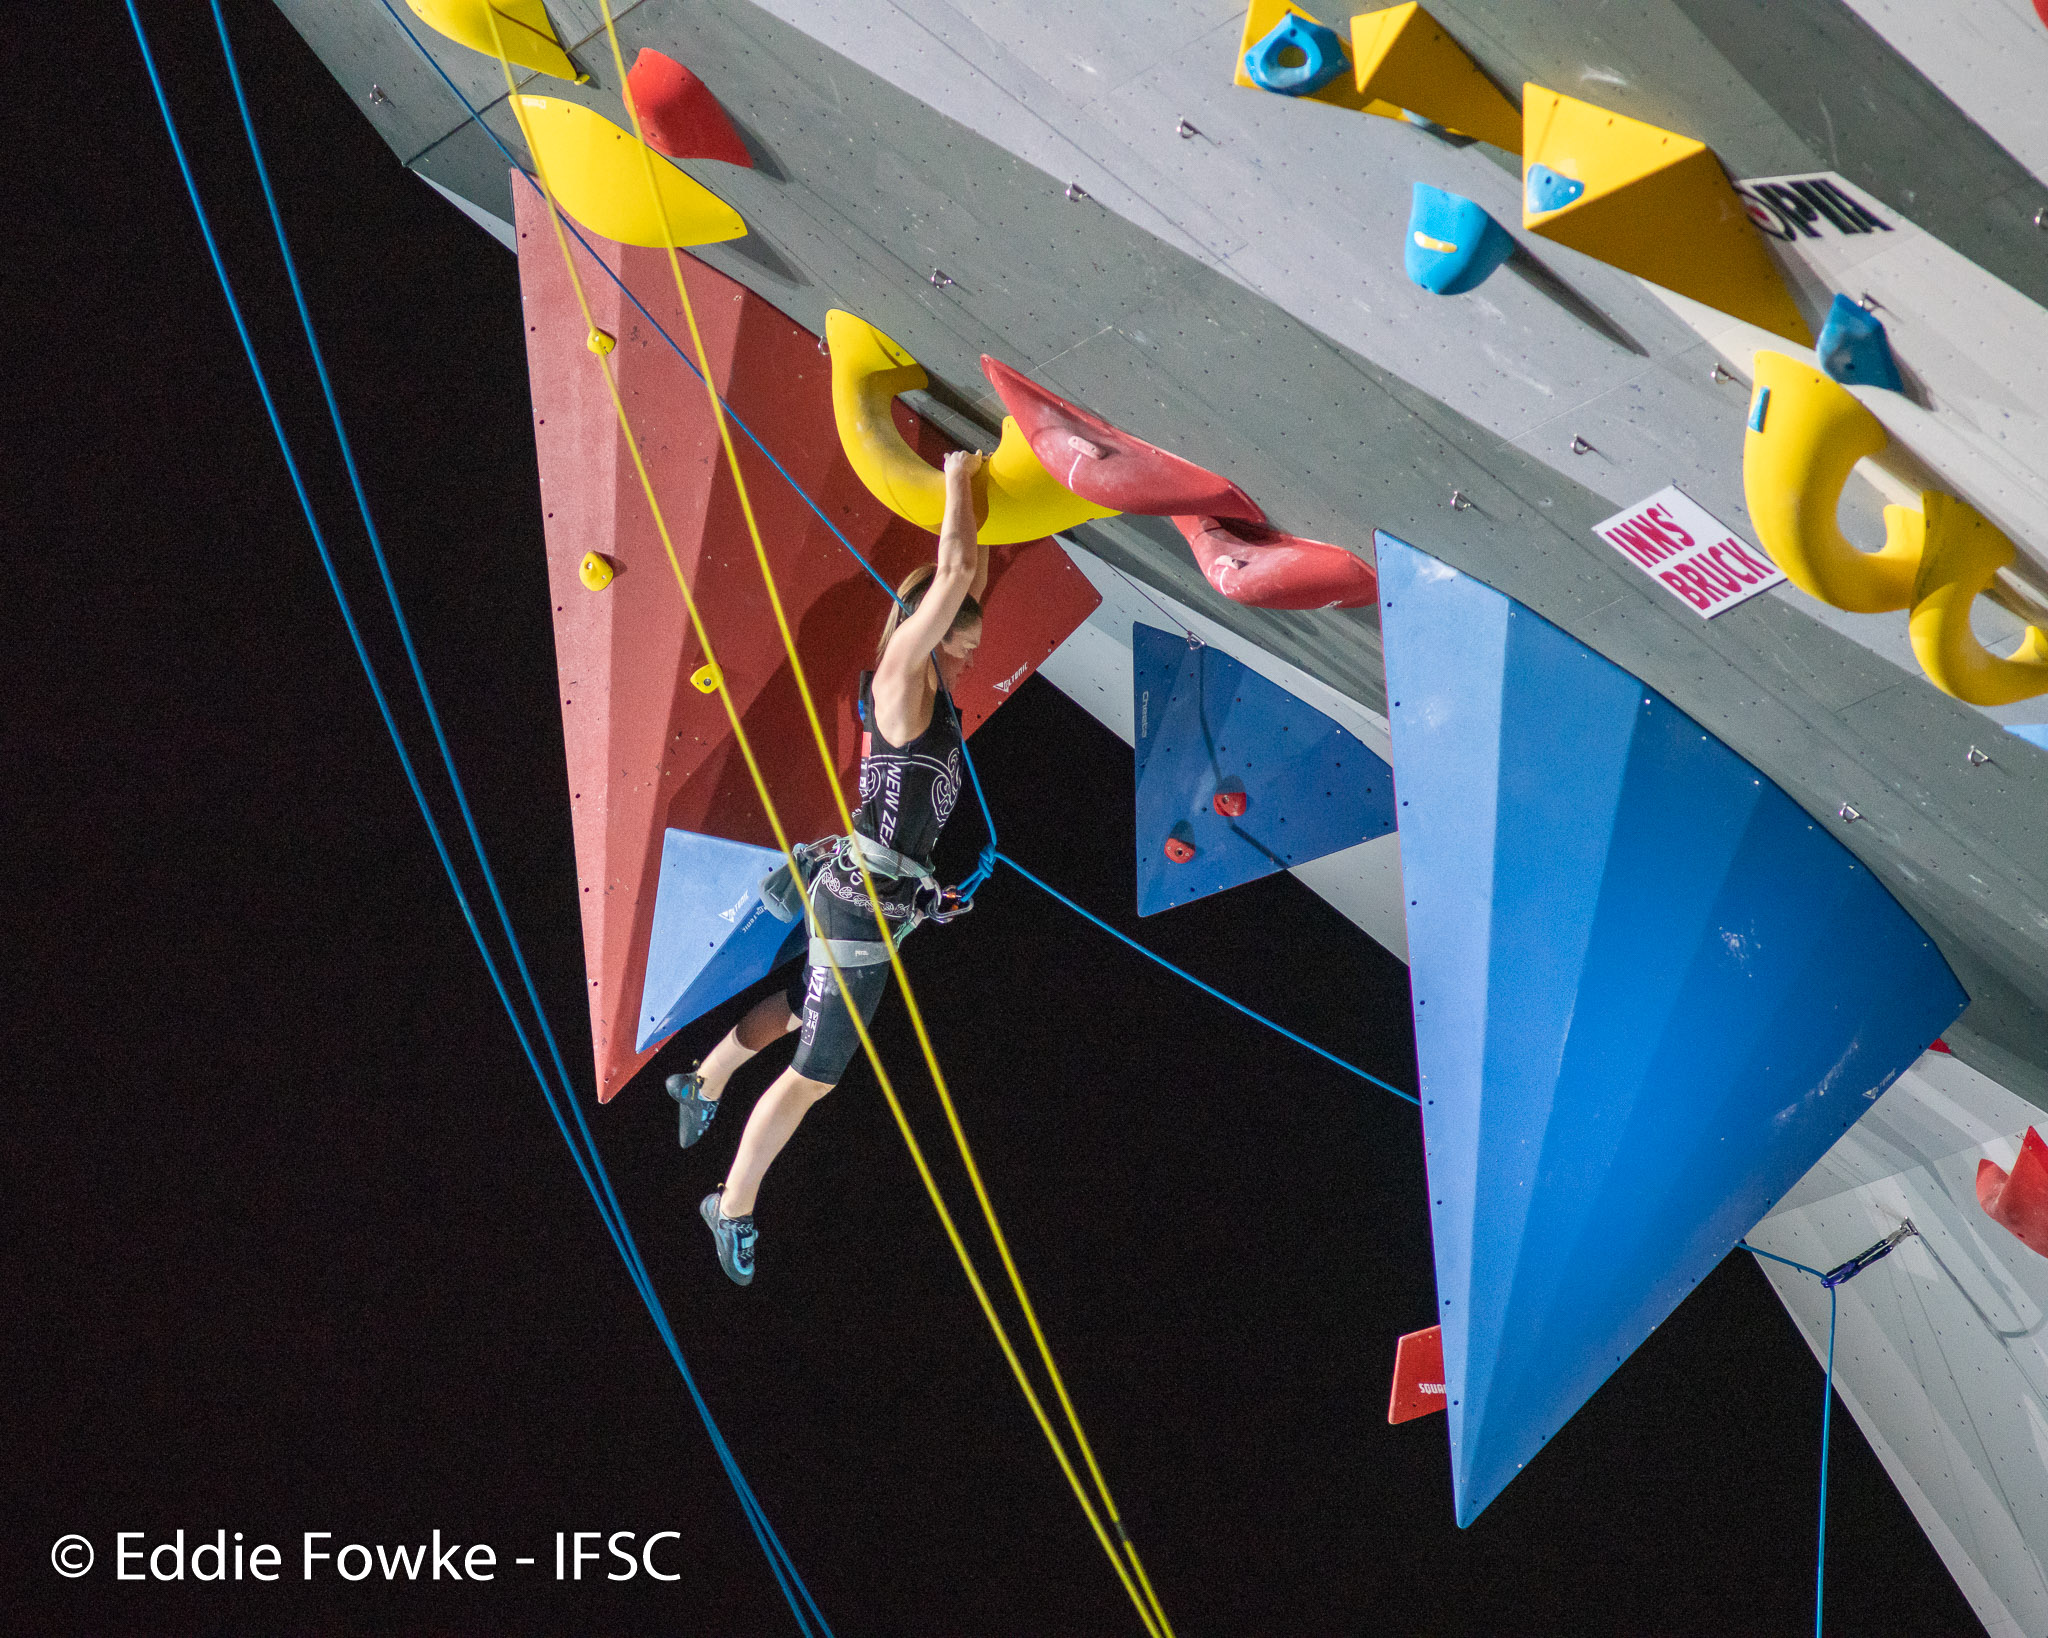 Rachel Carter places 4th at IFSC World Championships in Innsbruck